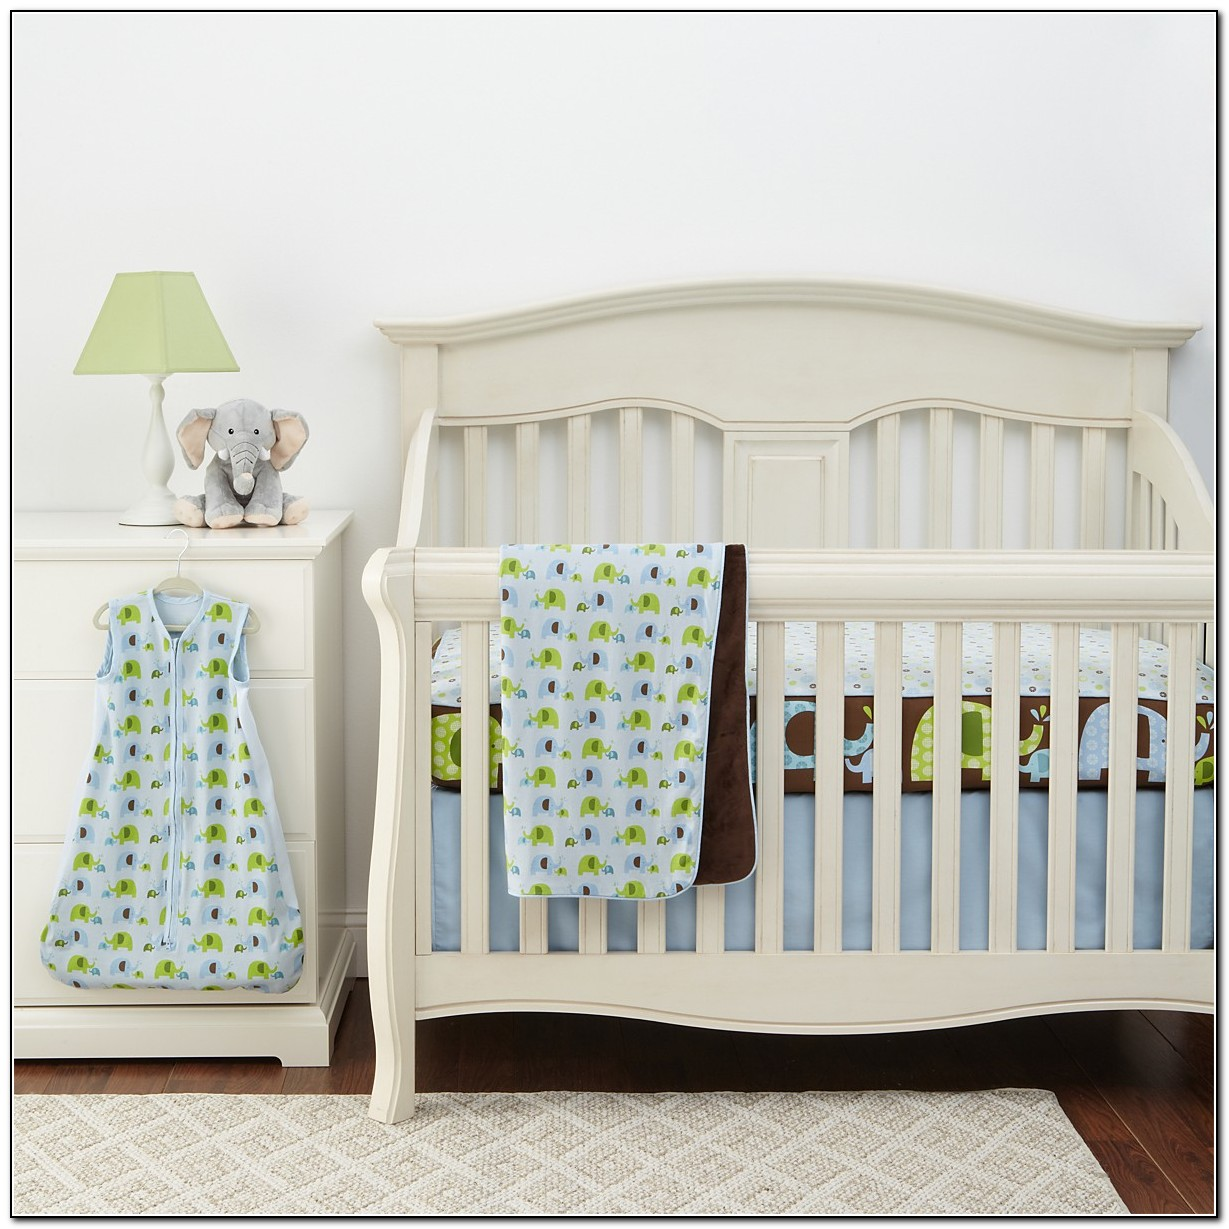 Elephant Baby Bedding Set